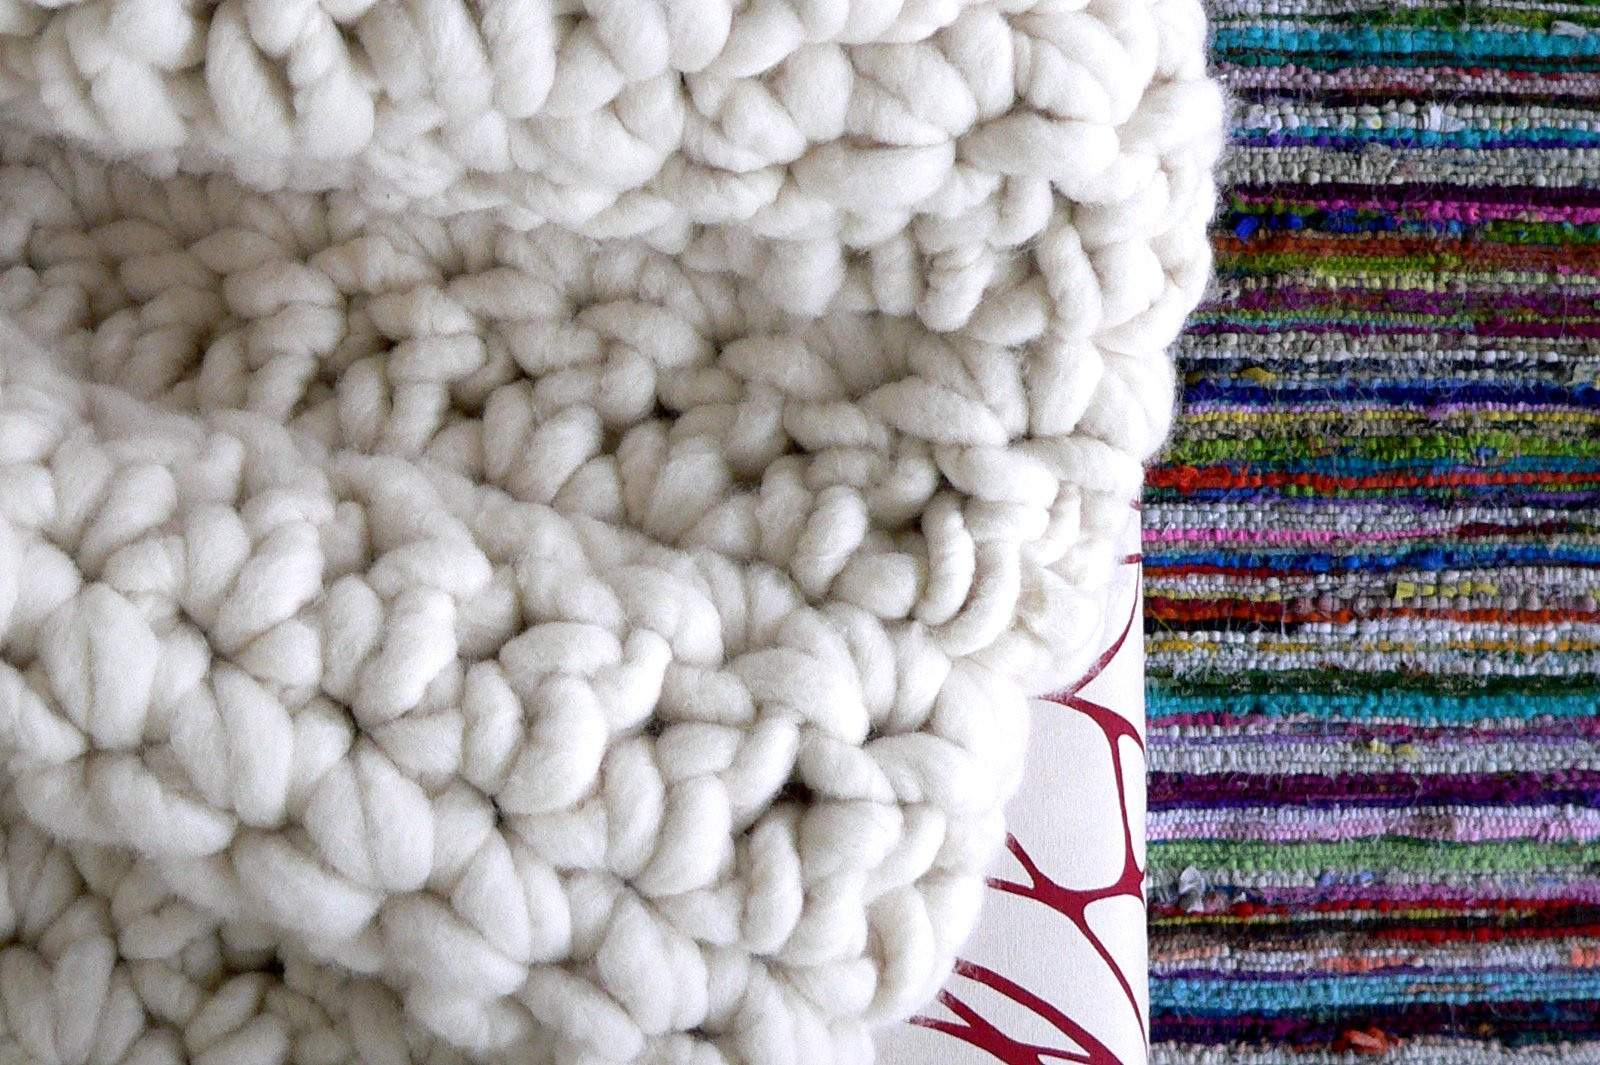 What You Should Know Before Proceeding Crochet Chunky Yarn Patterns Awesome Crochet Afghan Pattern For Chunky Yarn Dancox For Chunky